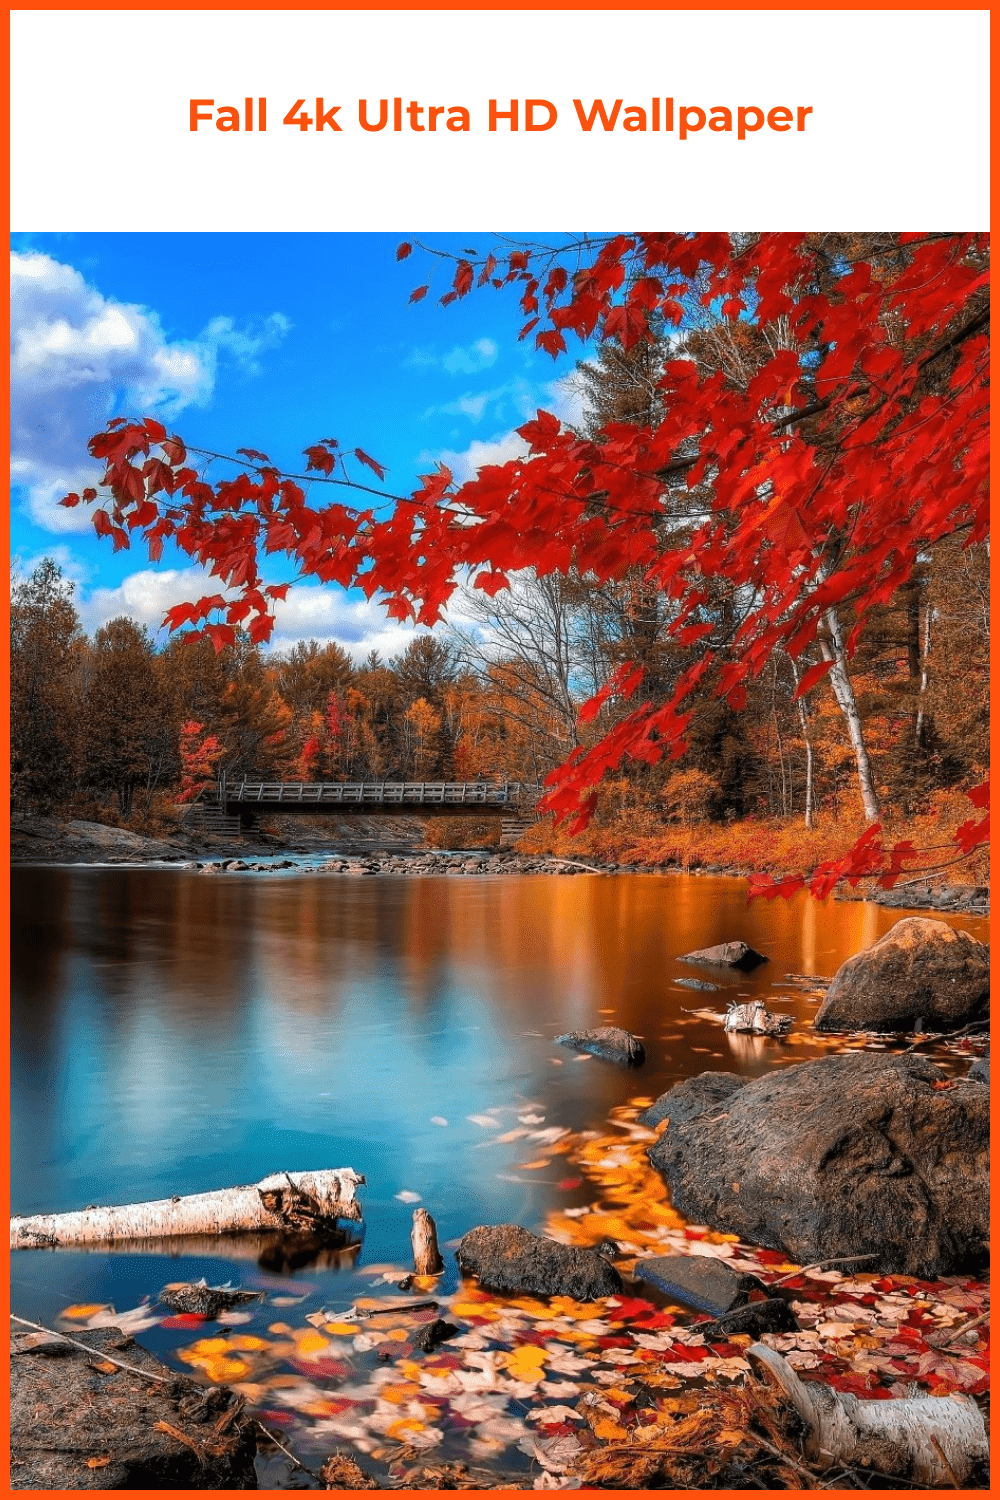 A colorful autumn spent in a small town near the lake.